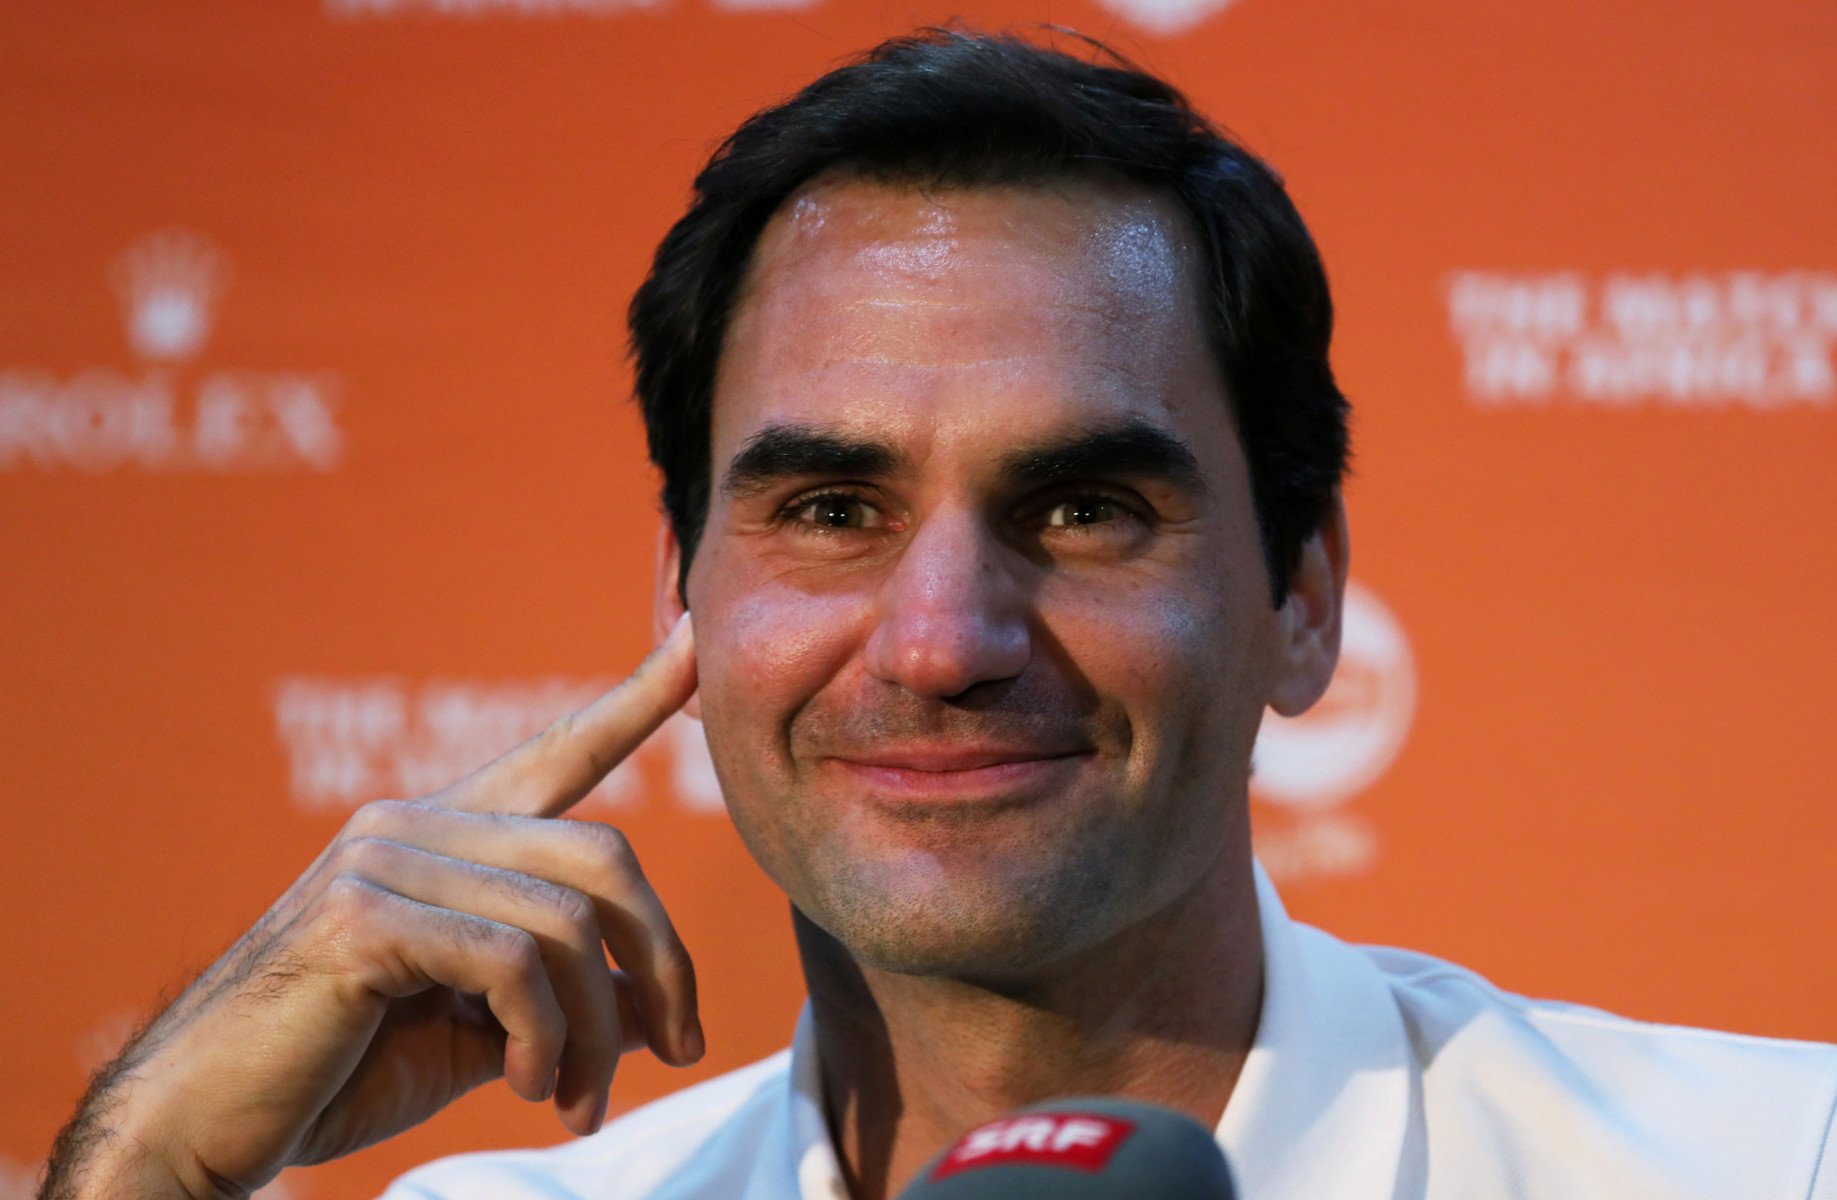 Federer has made a £450million fortune from tennis